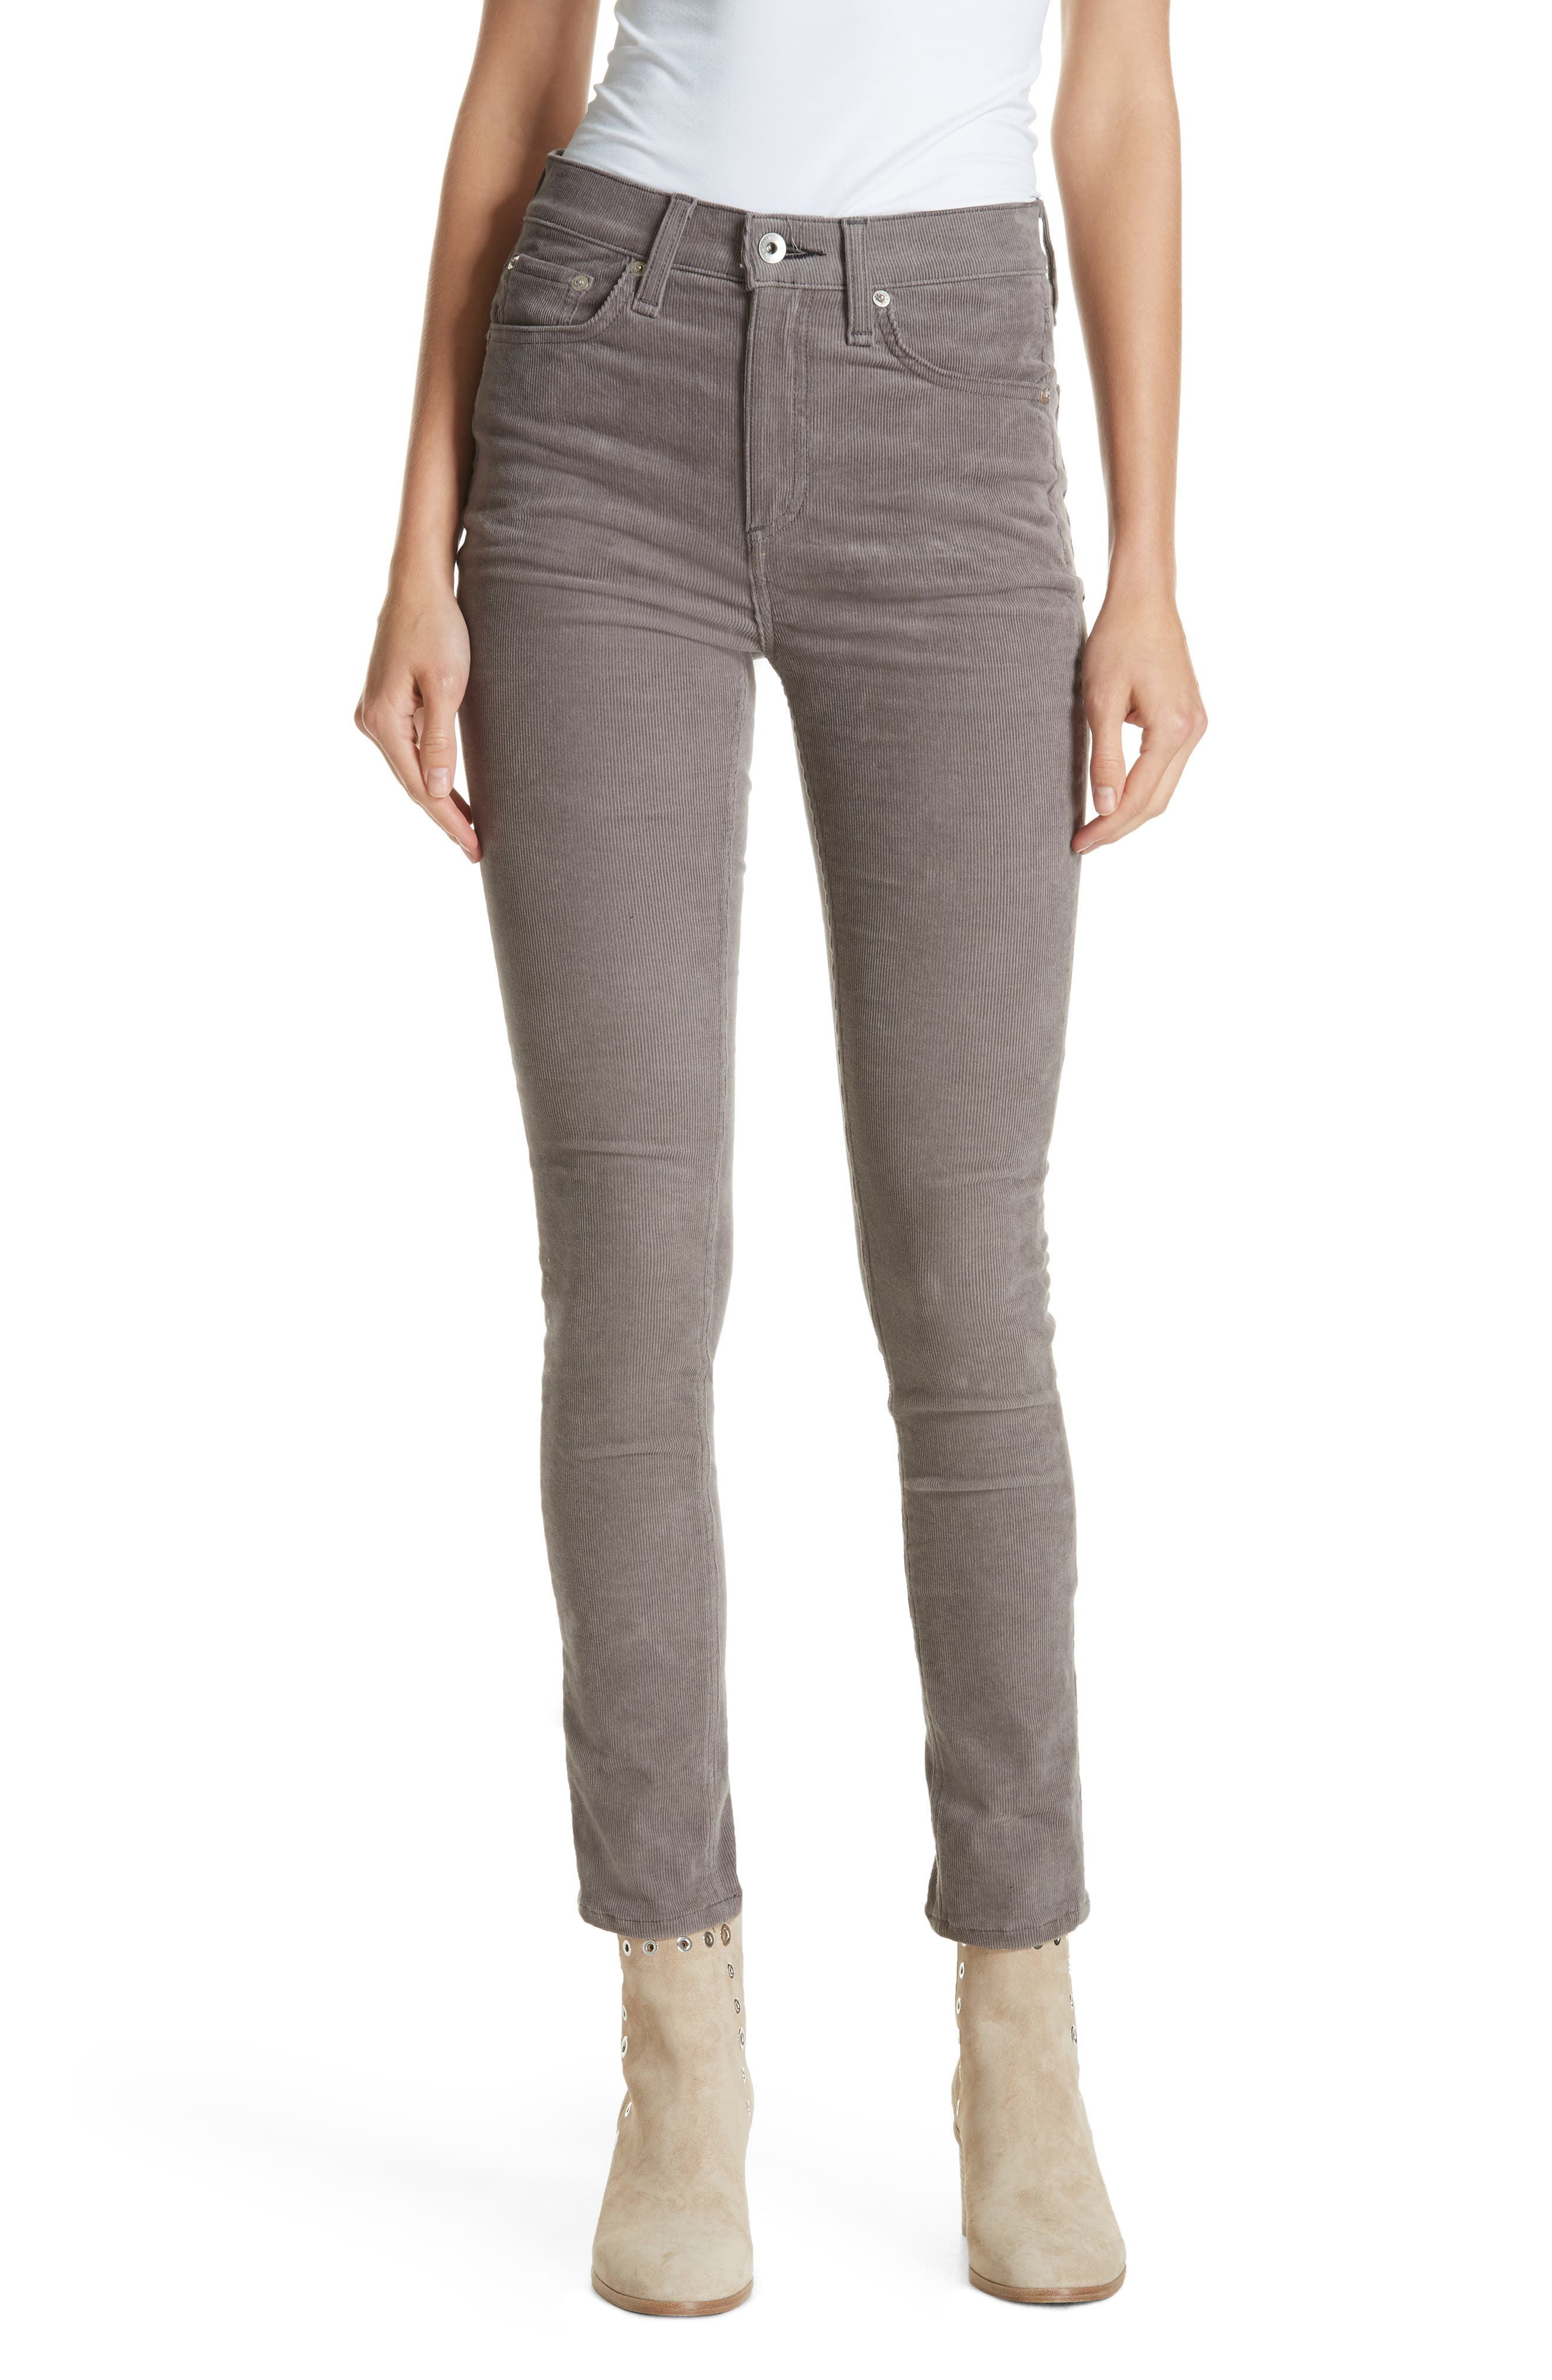 rag & bone High Waist Ankle Skinny Corduroy Pants,                             Main thumbnail 1, color,                             021